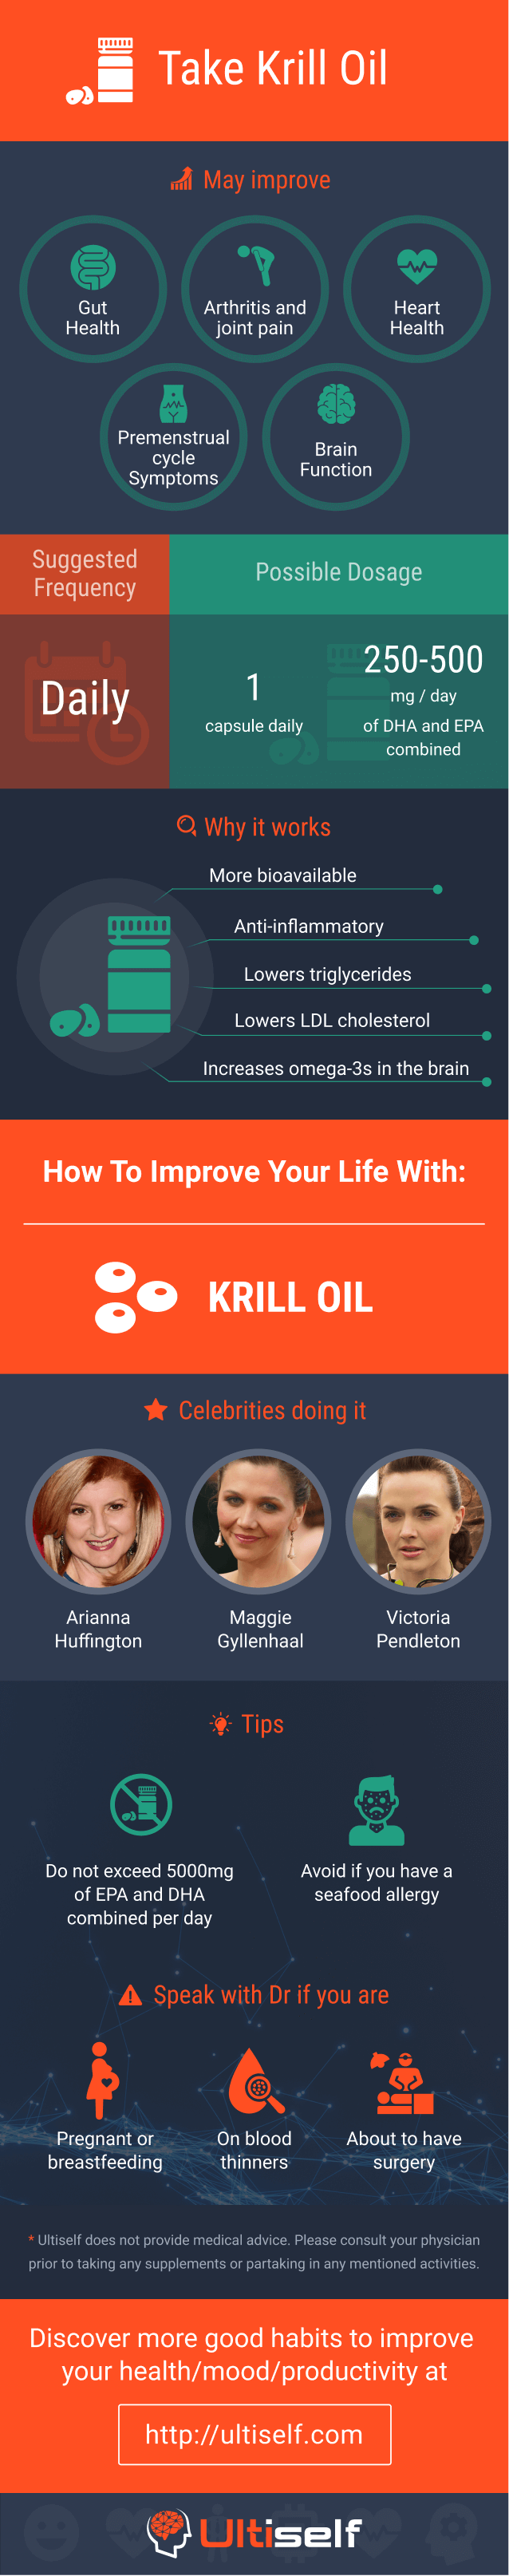 Take Krill Oil infographic